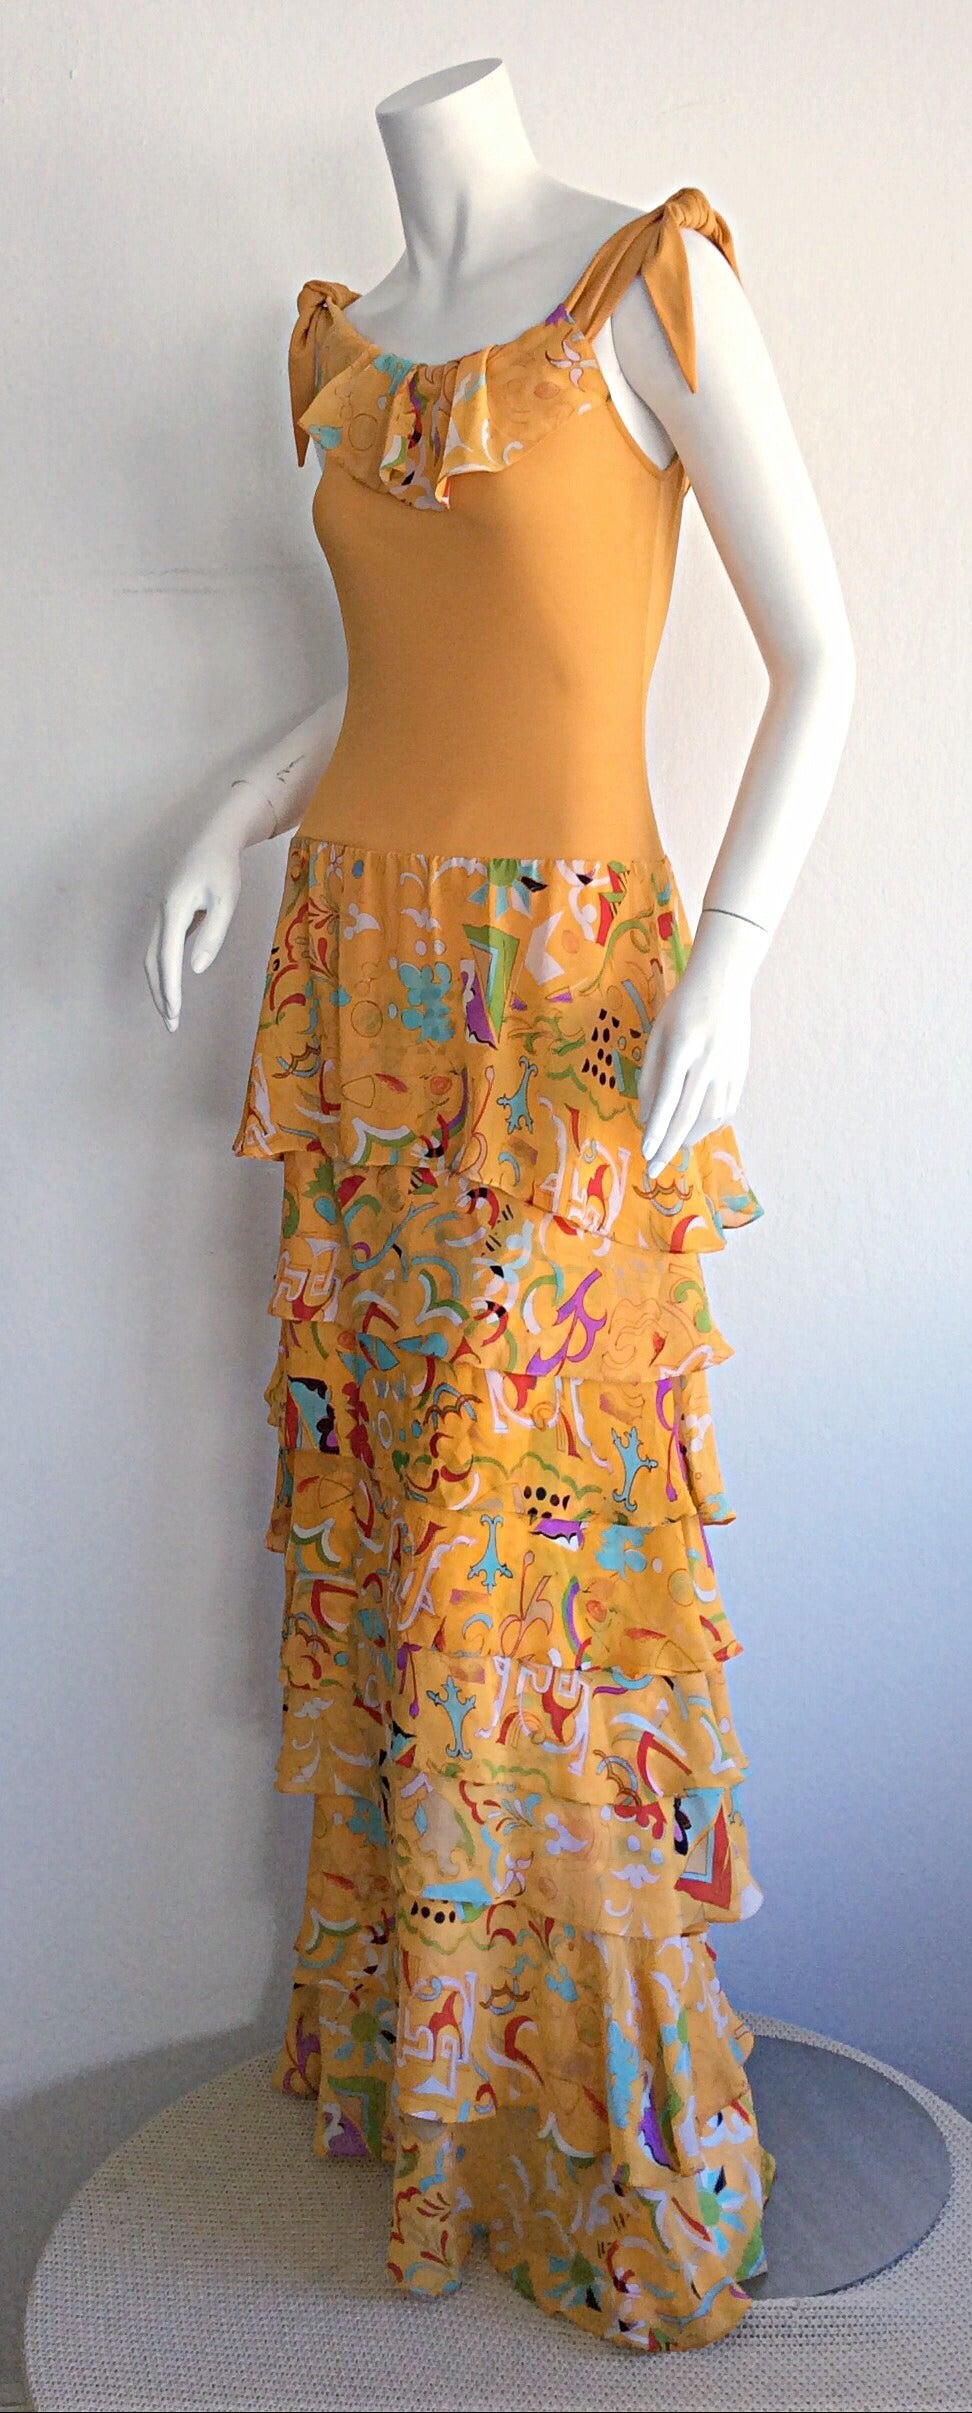 Beautiful 70s Stephen Burrows jersey maxi dress! Super flattering bodice, with incredible printed silk tiered skirt. Sleeves can be worn on arms, or off the shoulders. Sash details on each sleeve. Easily transitions from day to night. Brand new, and